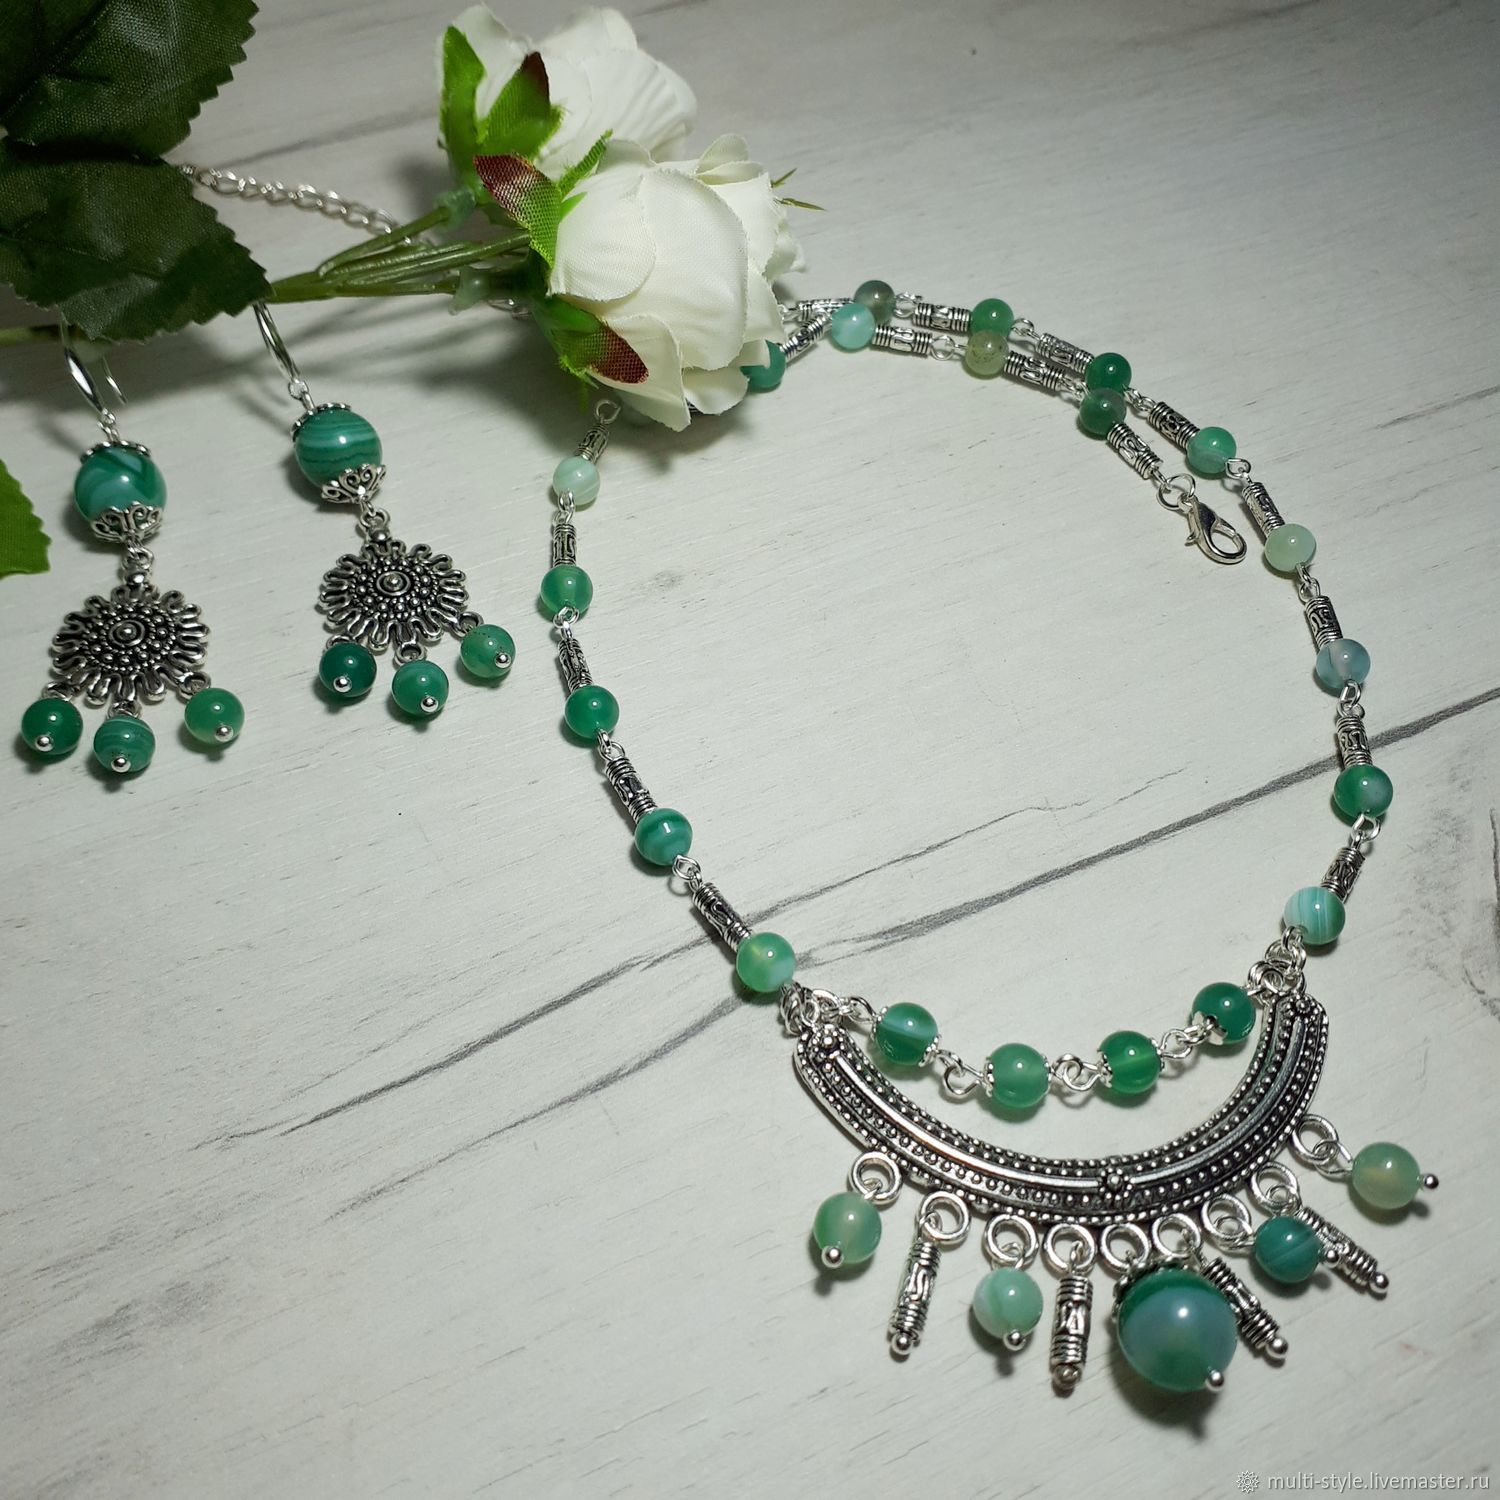 Necklace earrings bracelet with green agate ' Emerald', Jewelry Sets, St. Petersburg,  Фото №1